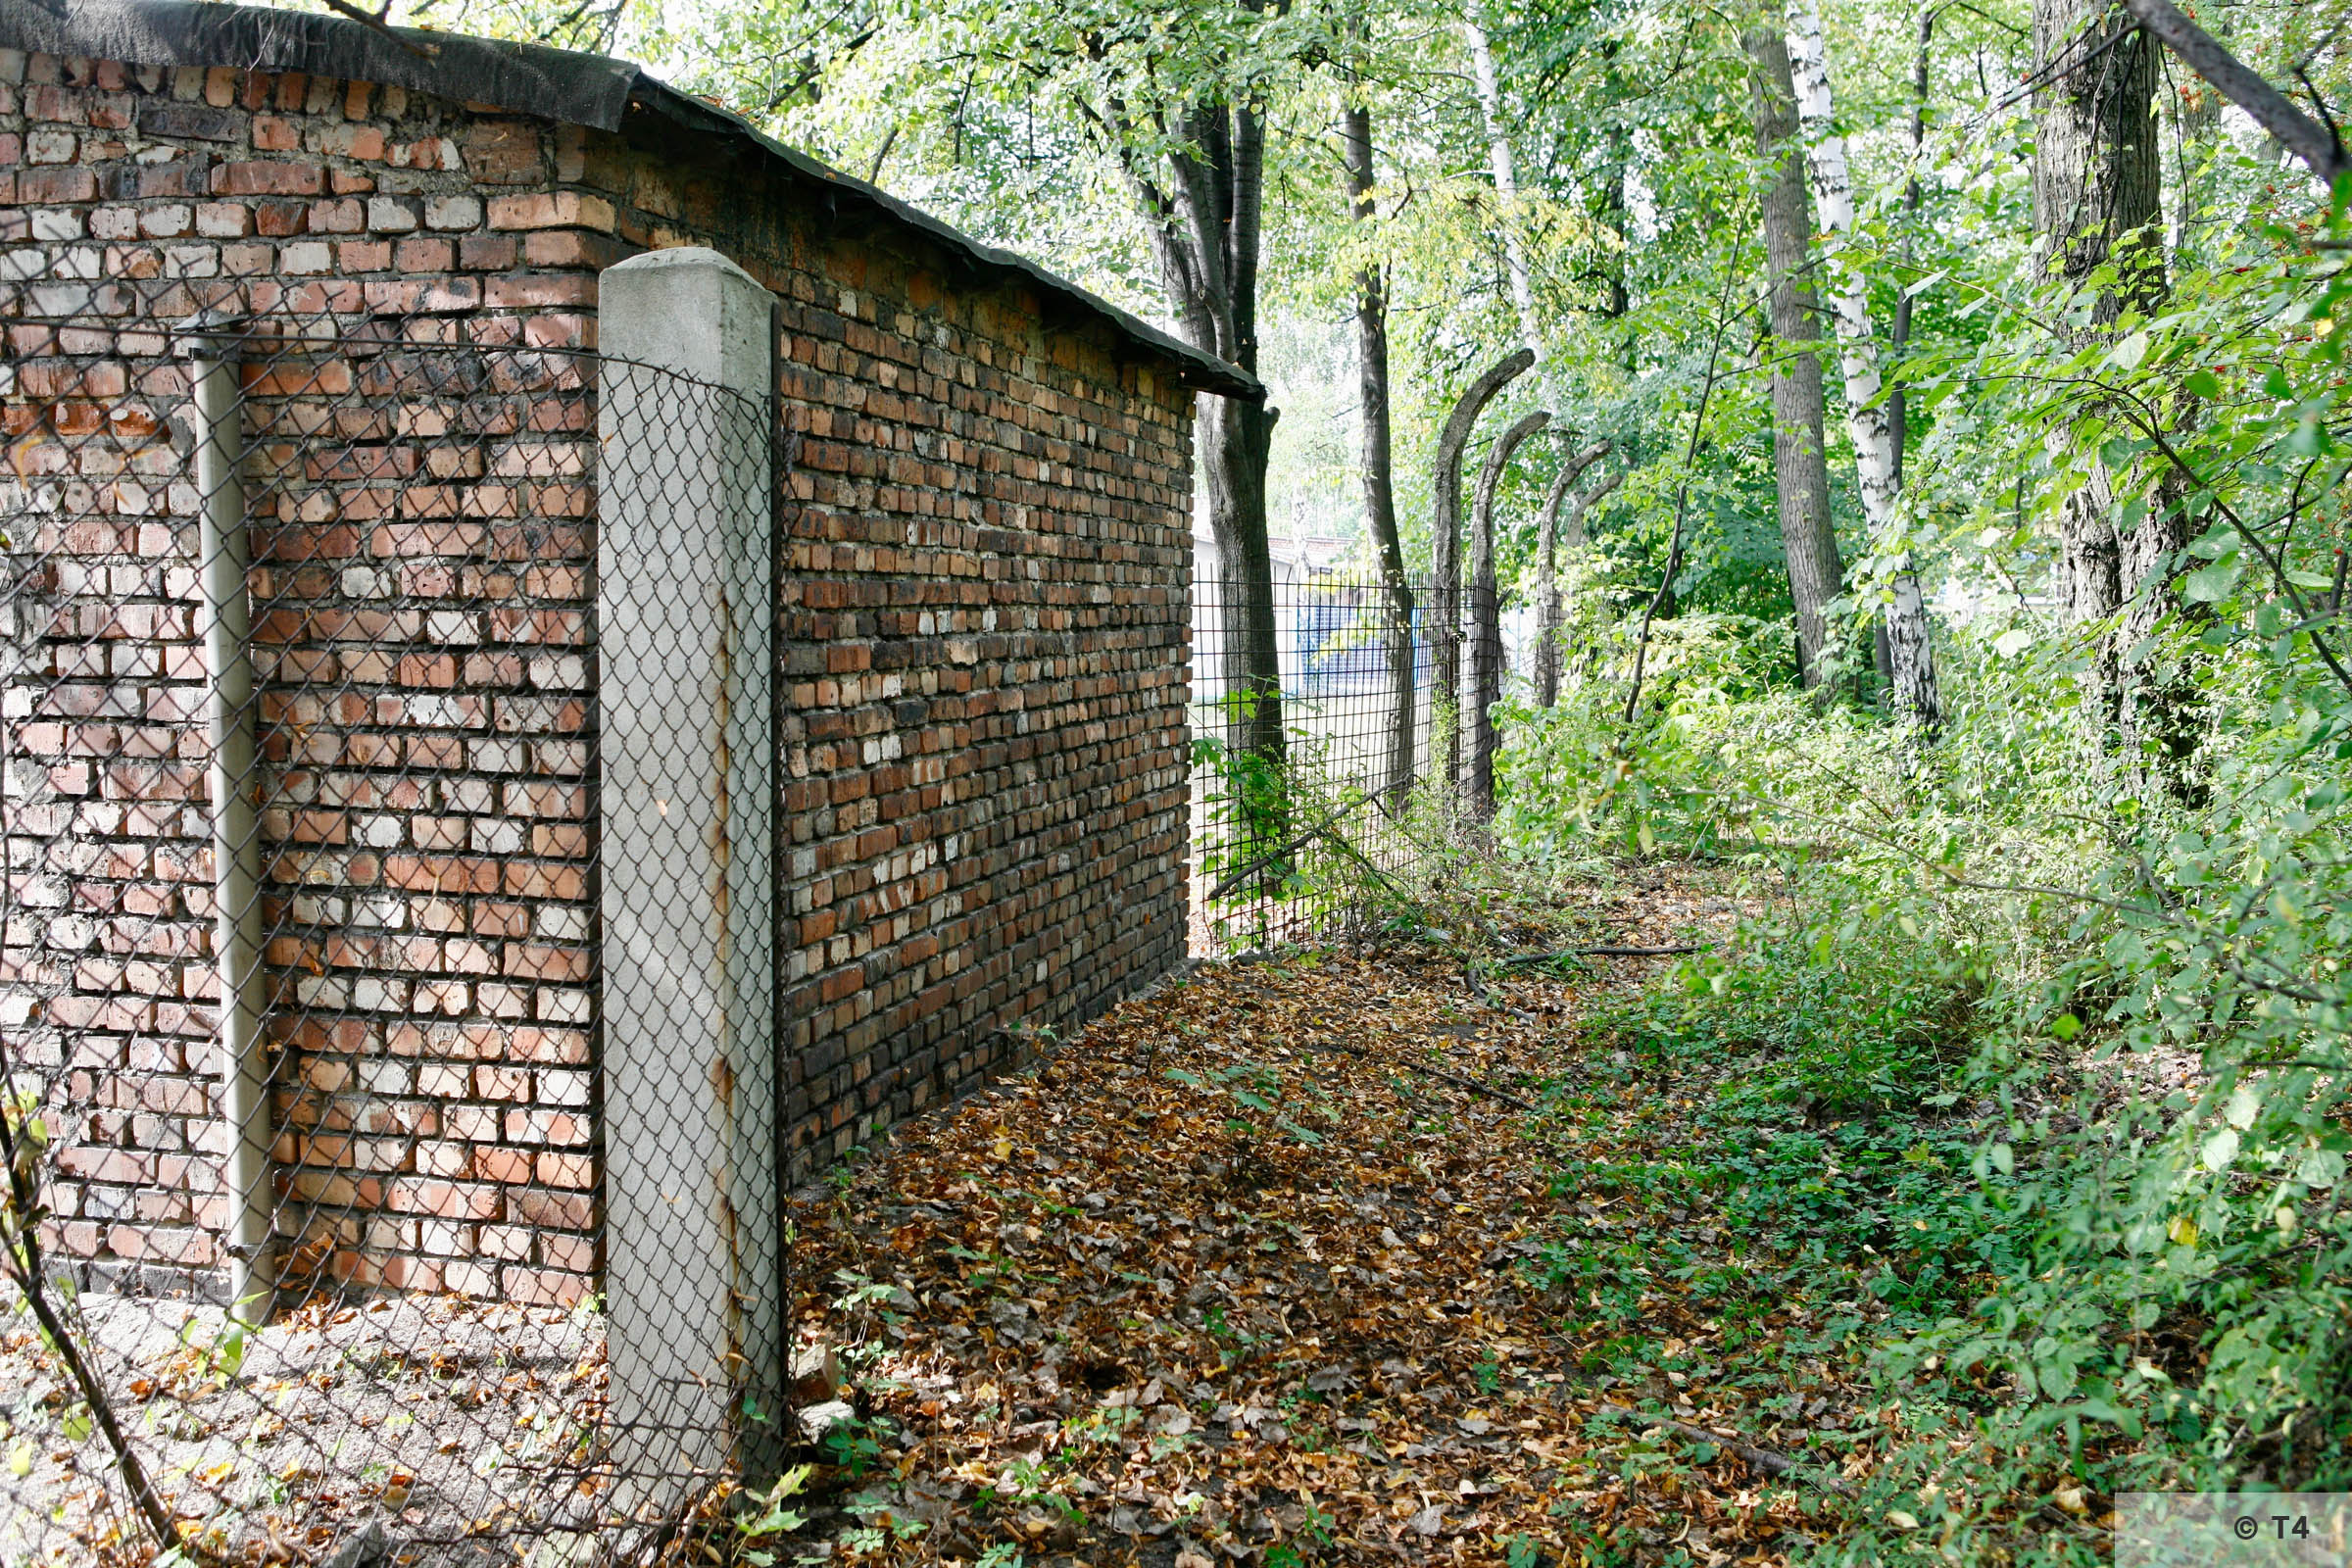 Brick building near the former Blockführerstube near the camp main entrance gate and remnants of camp fence. 2006 T4 2822